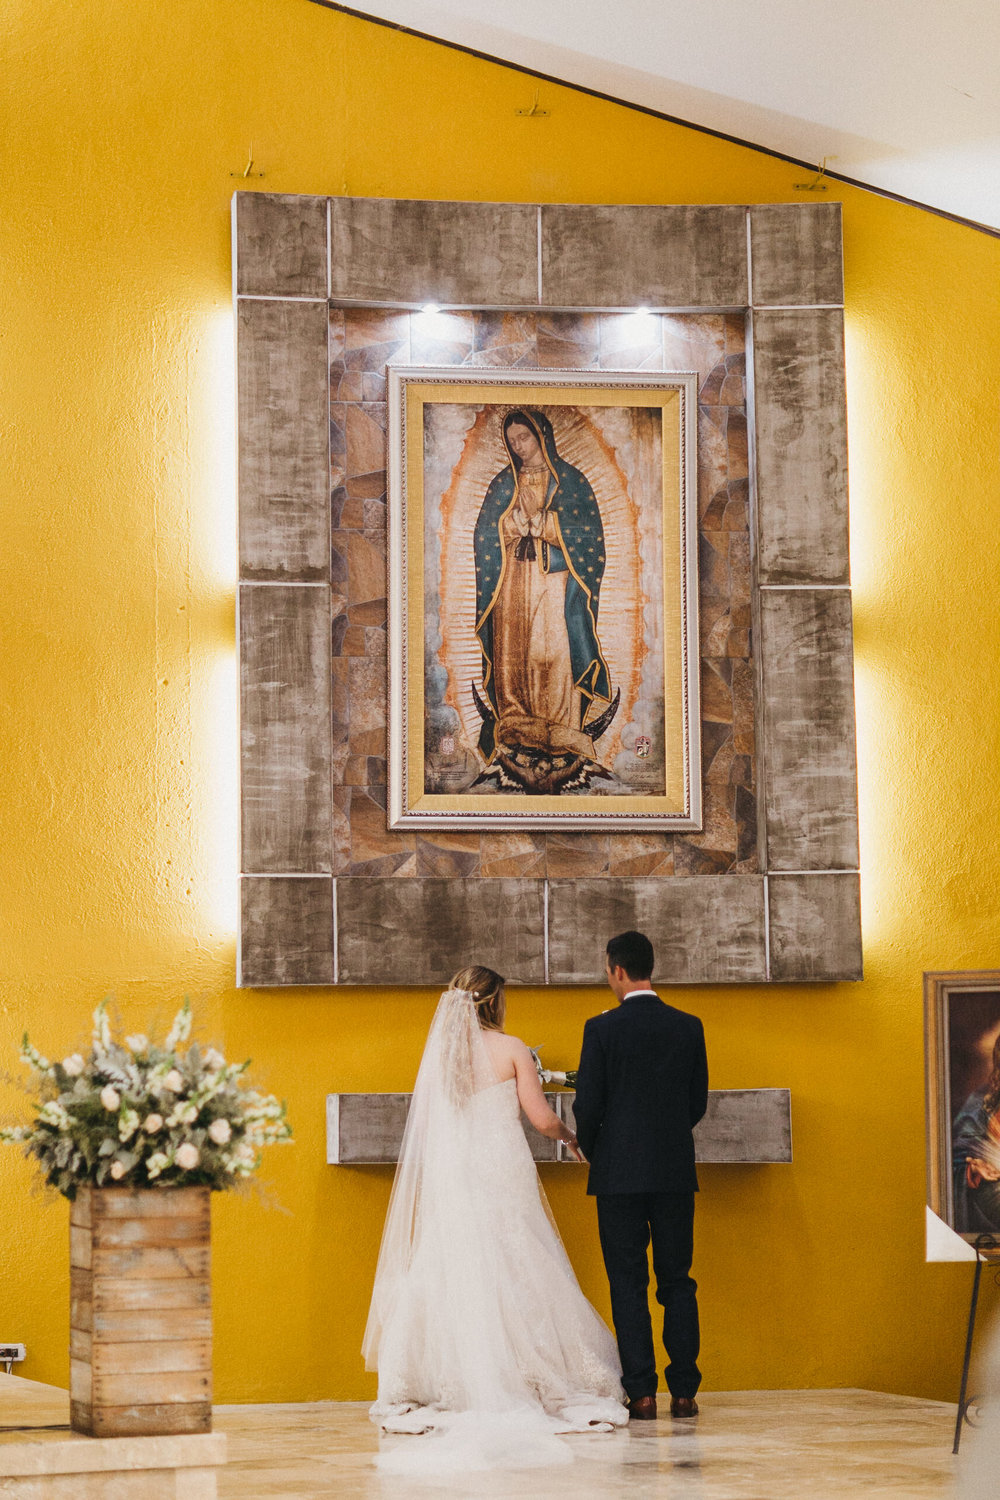 Wedding photography Ensenada44.jpg